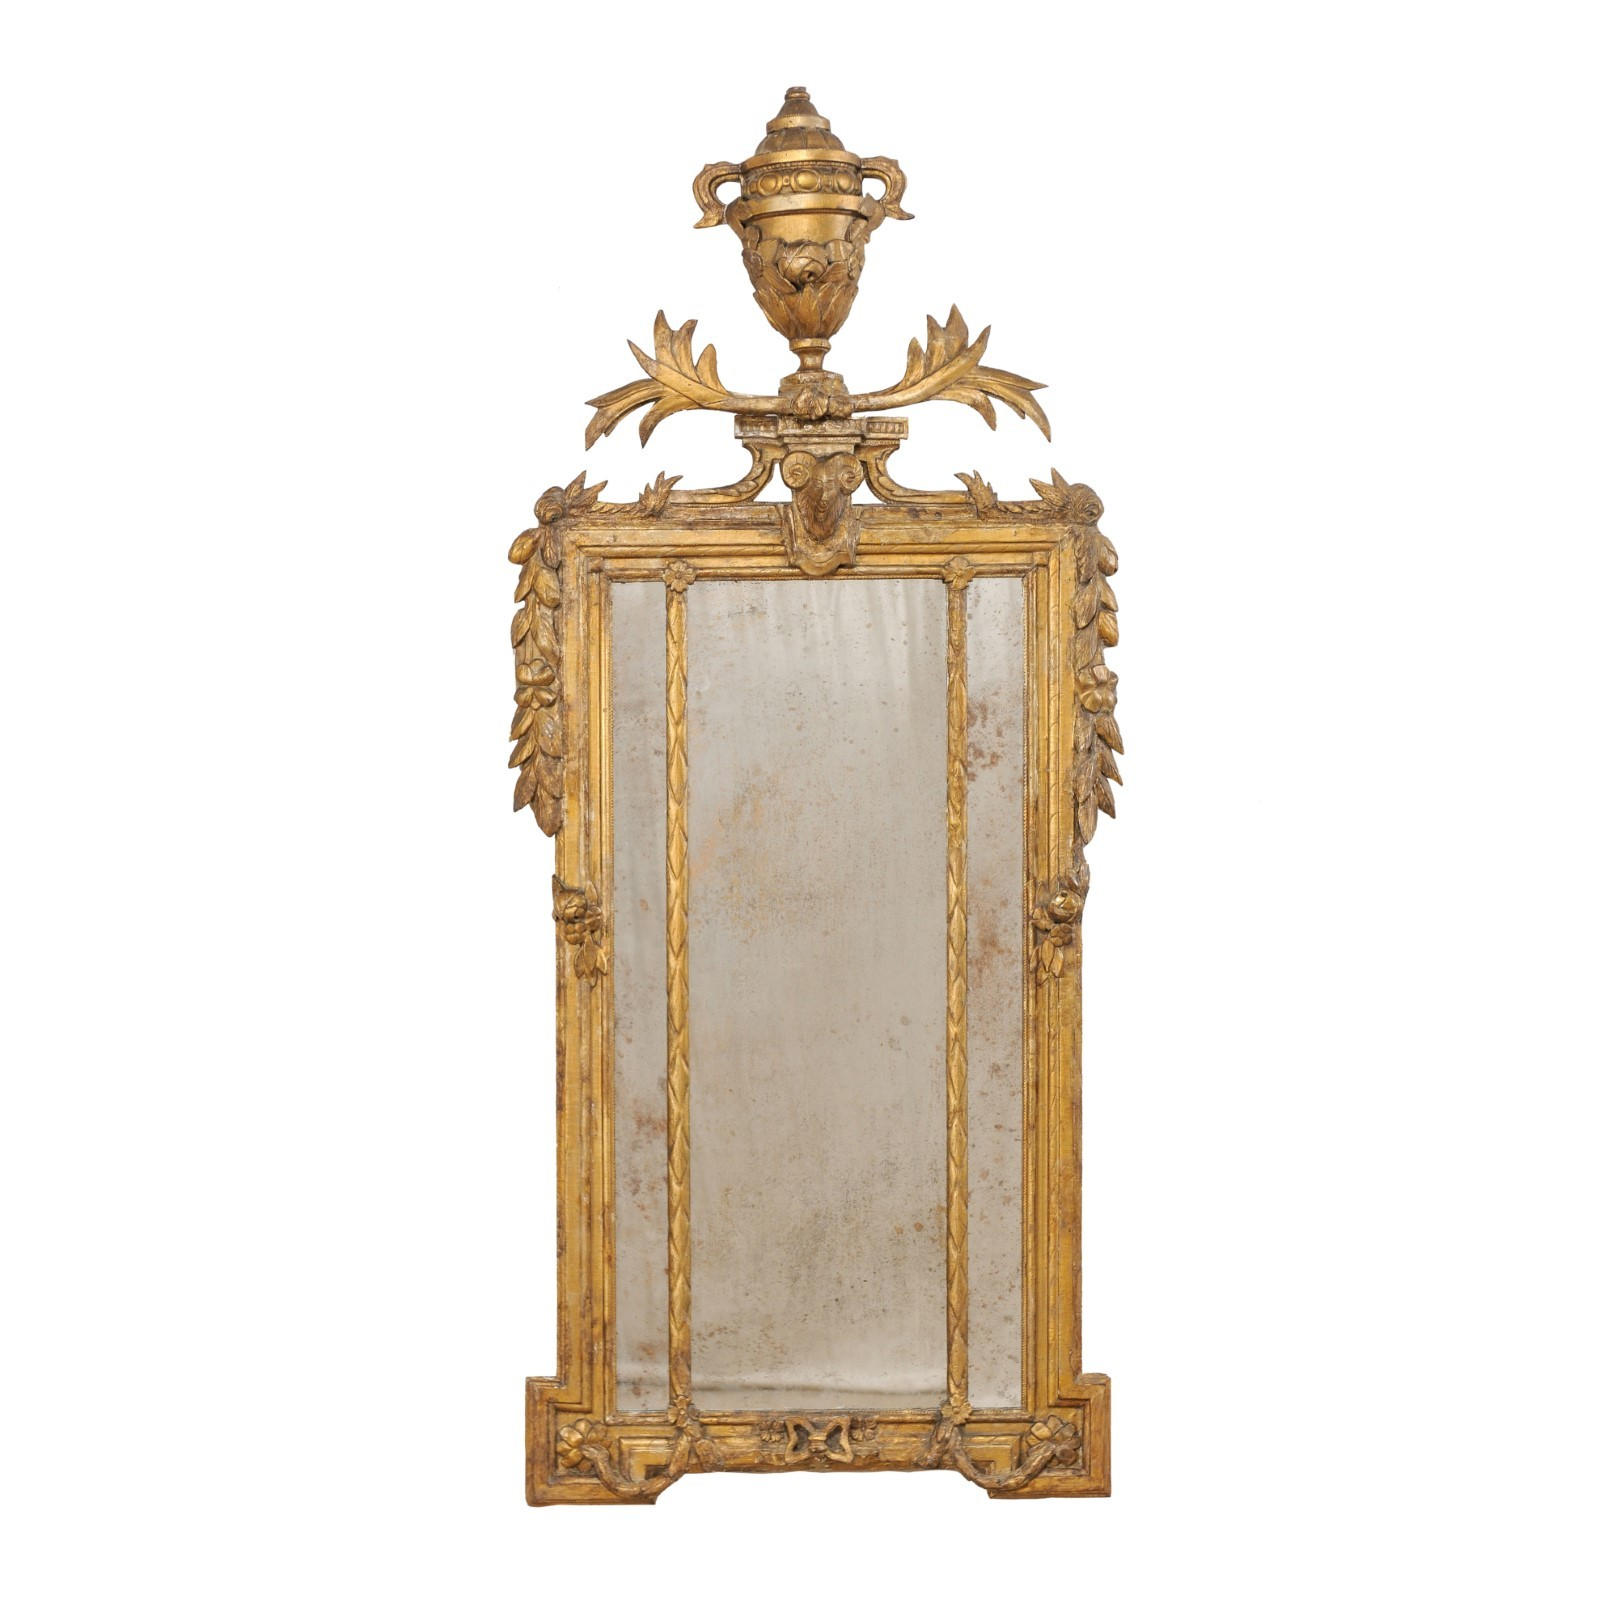 Italian Neoclassical Mirror, Early 19th C.